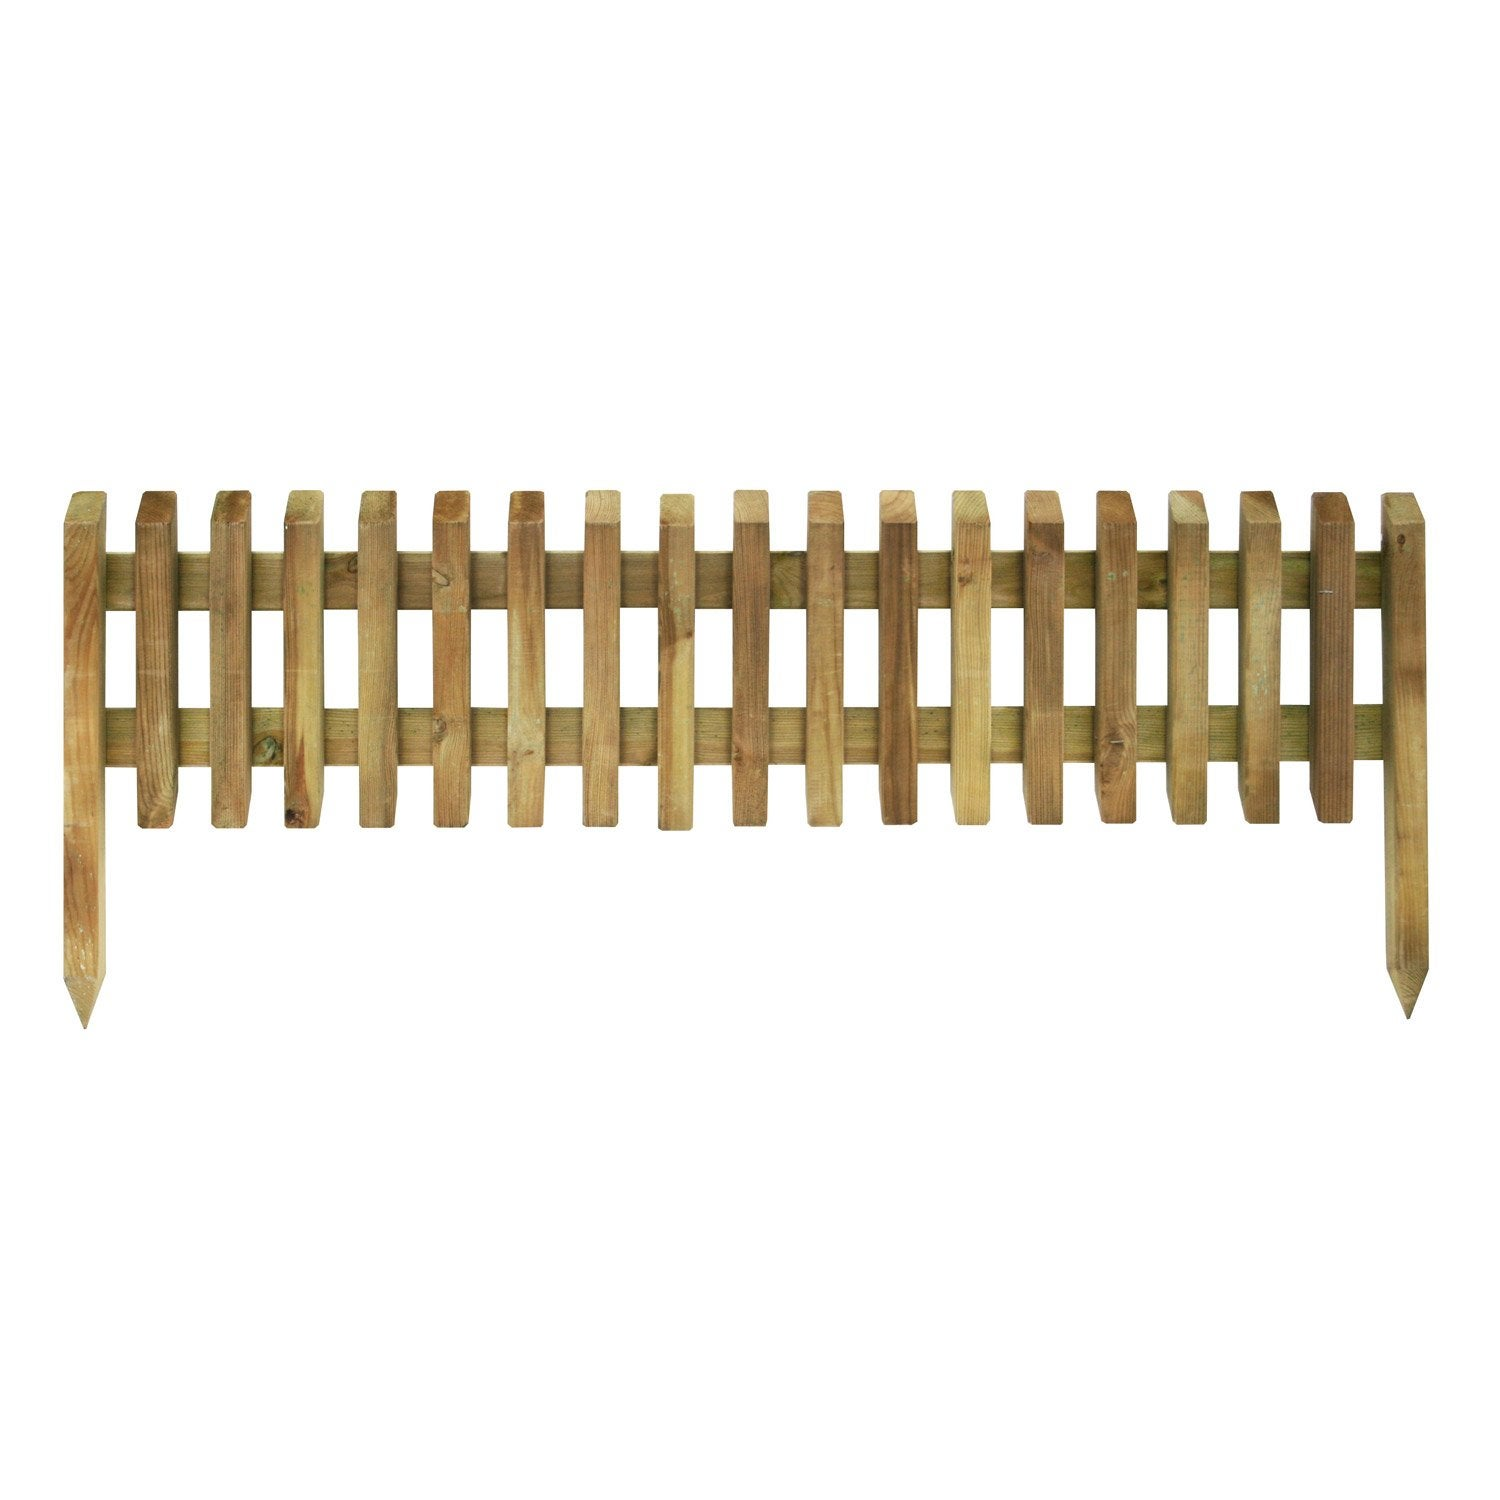 Bordure planter pikasso bois naturel x cm leroy merlin for Barriere de jardin bois